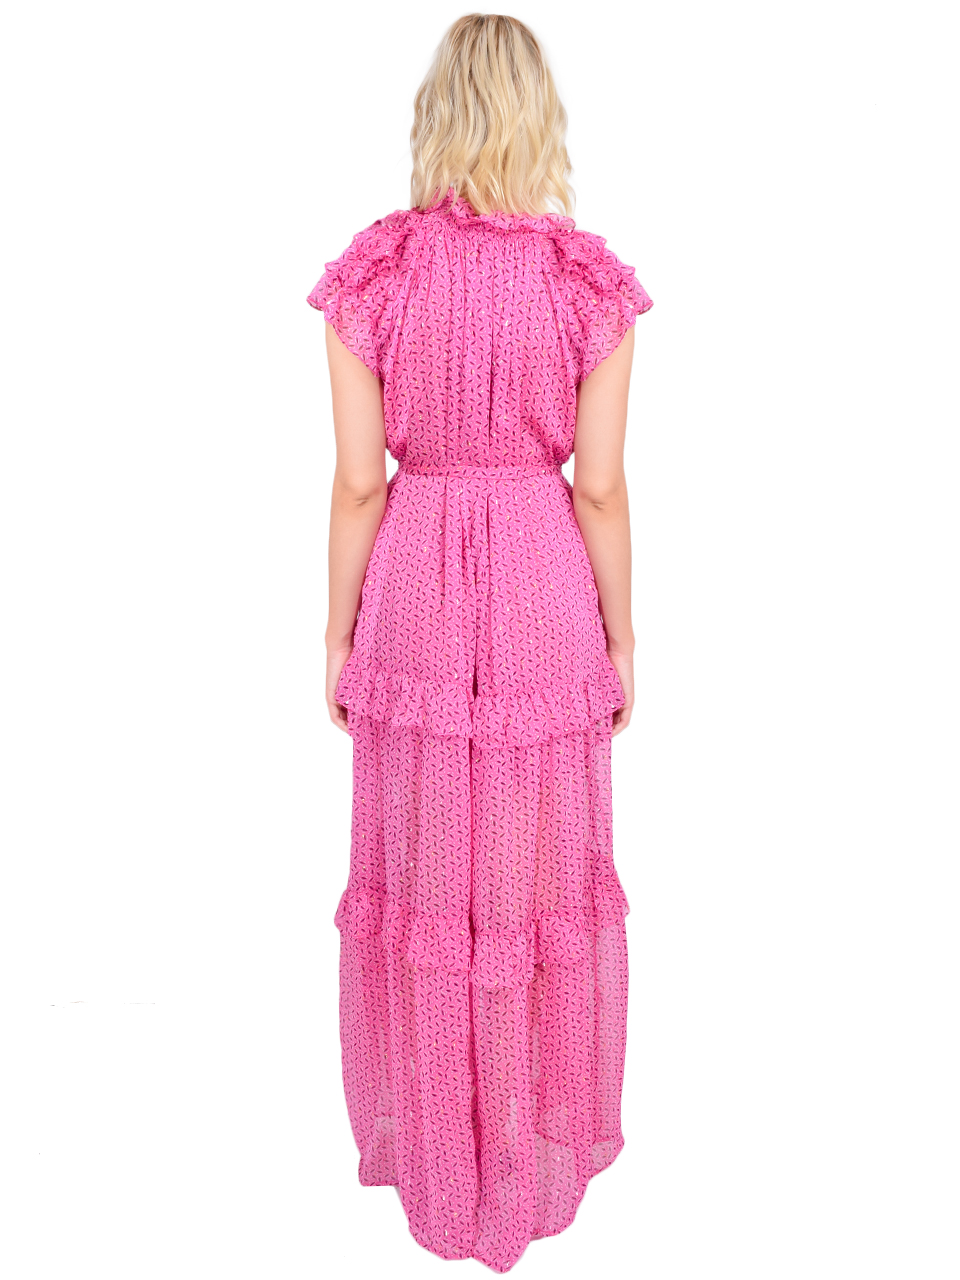 Sabina Musayev Jessa Dress in Pink Print Back View